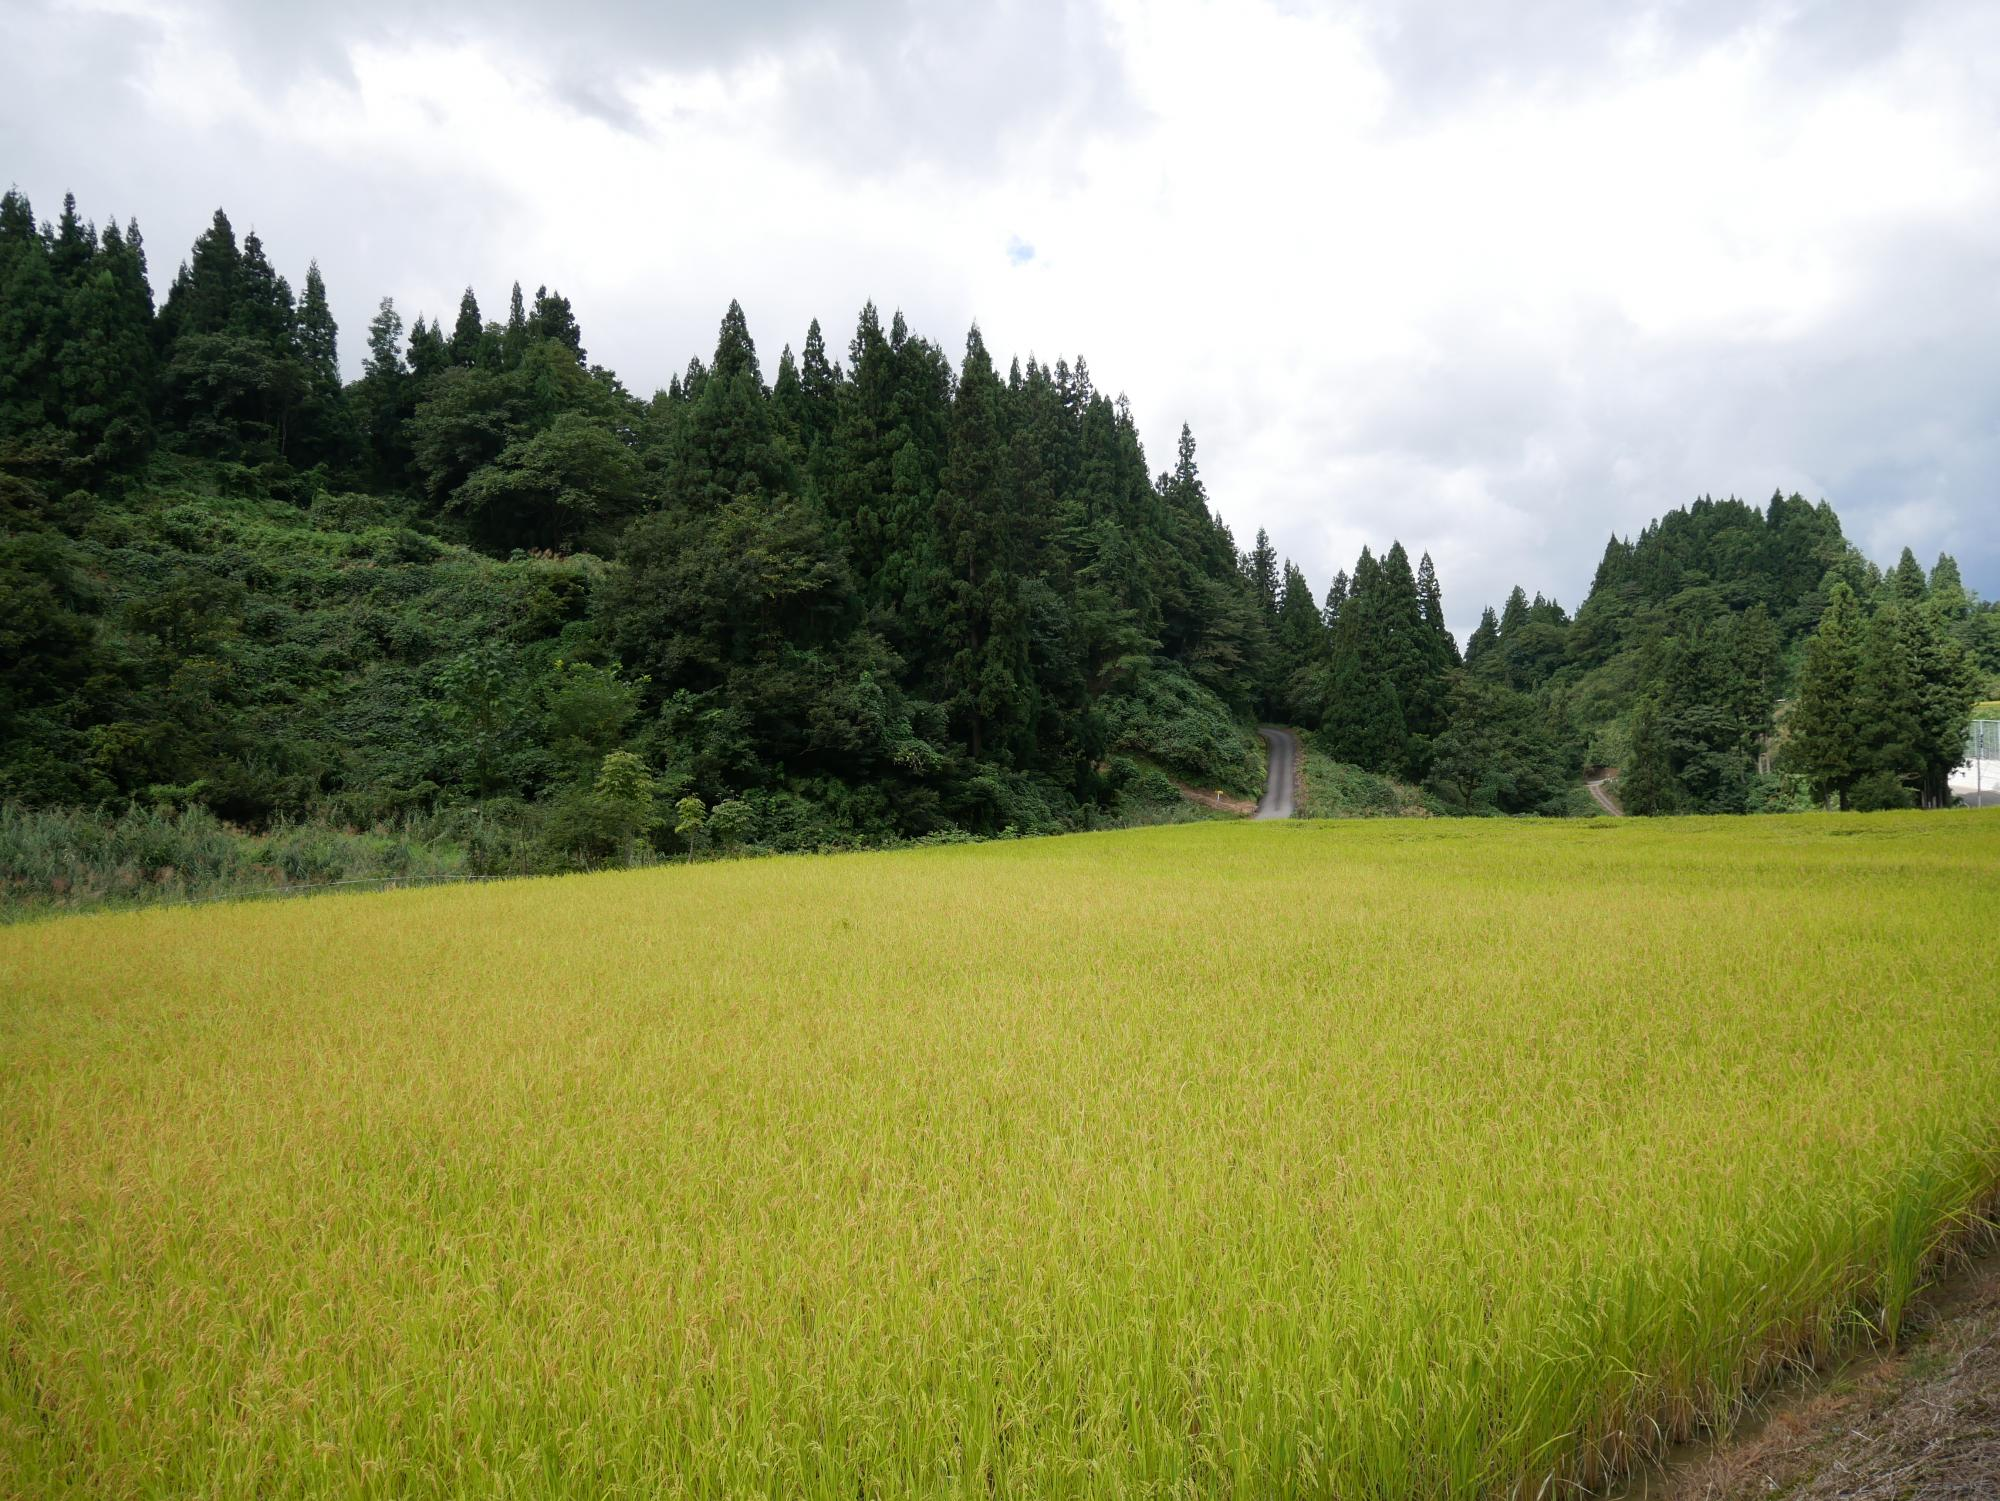 Harvesting Season for Sakamai